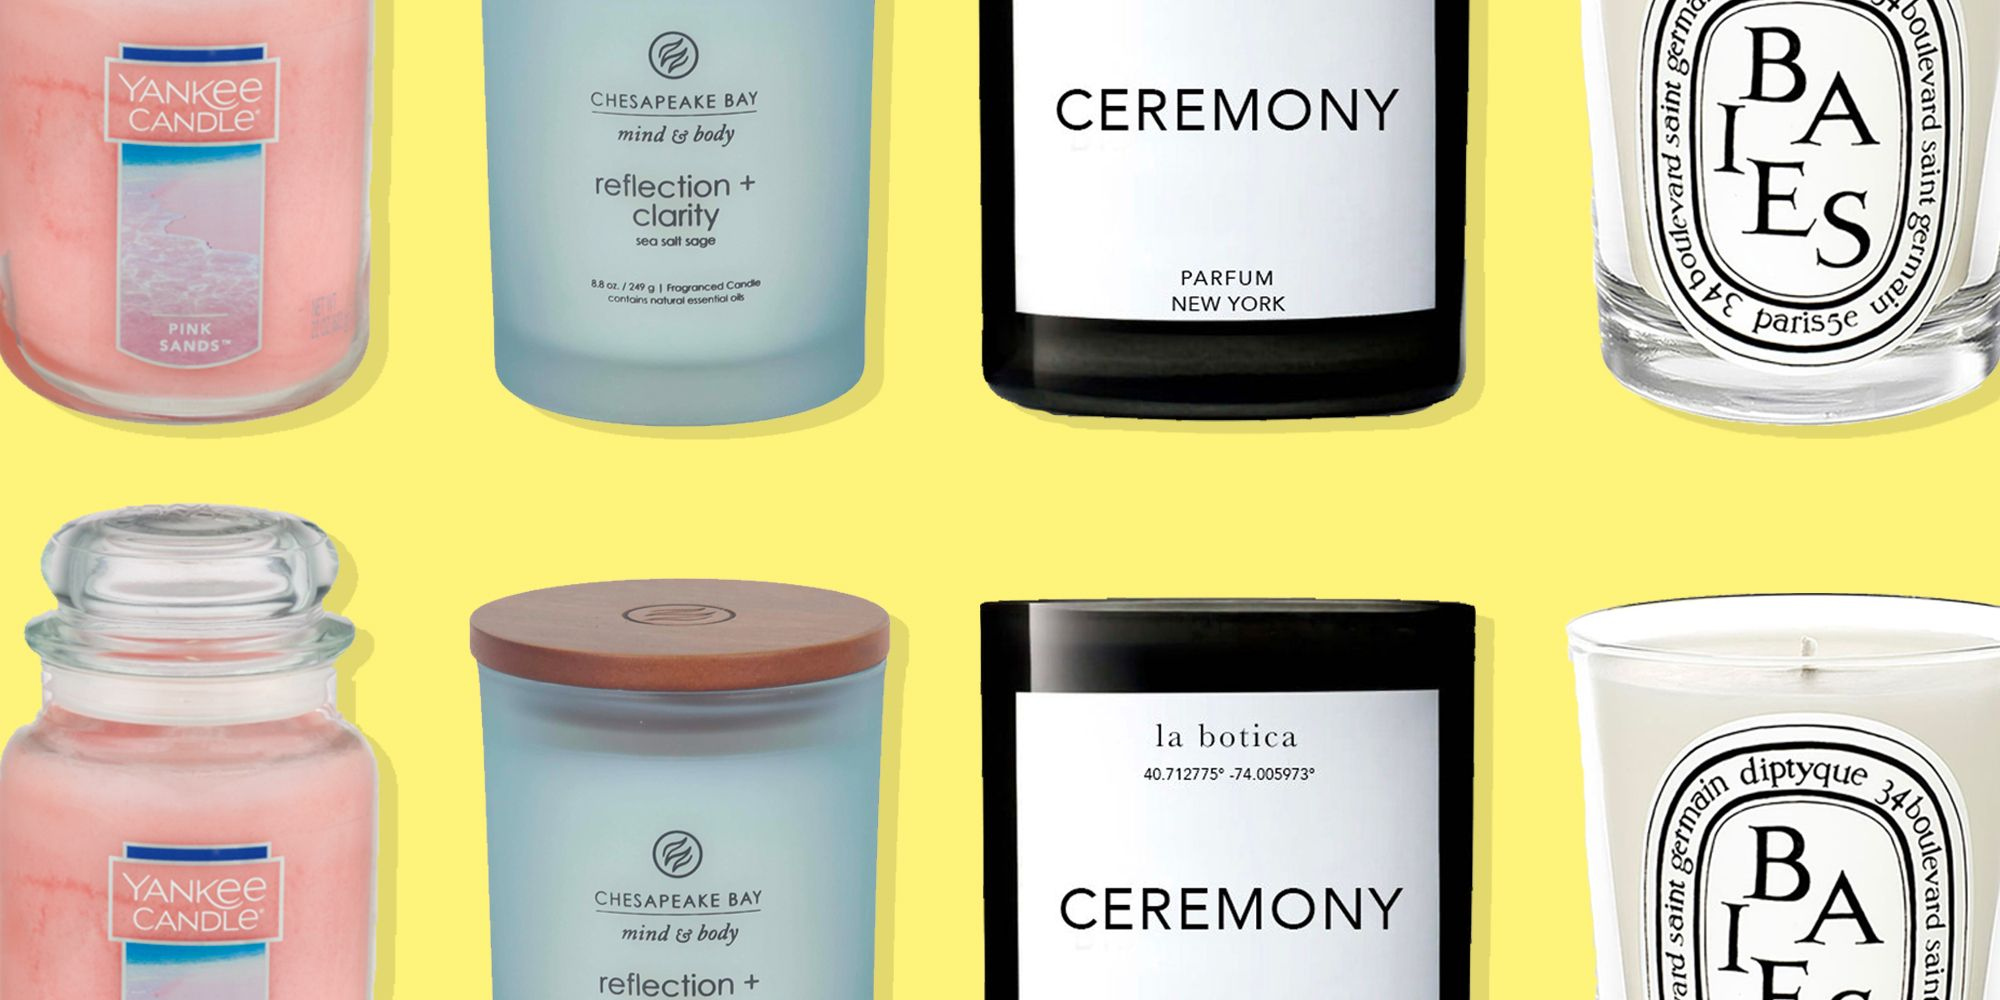 22 Best Scented Candles 2020 Top Smelling Candle Brands